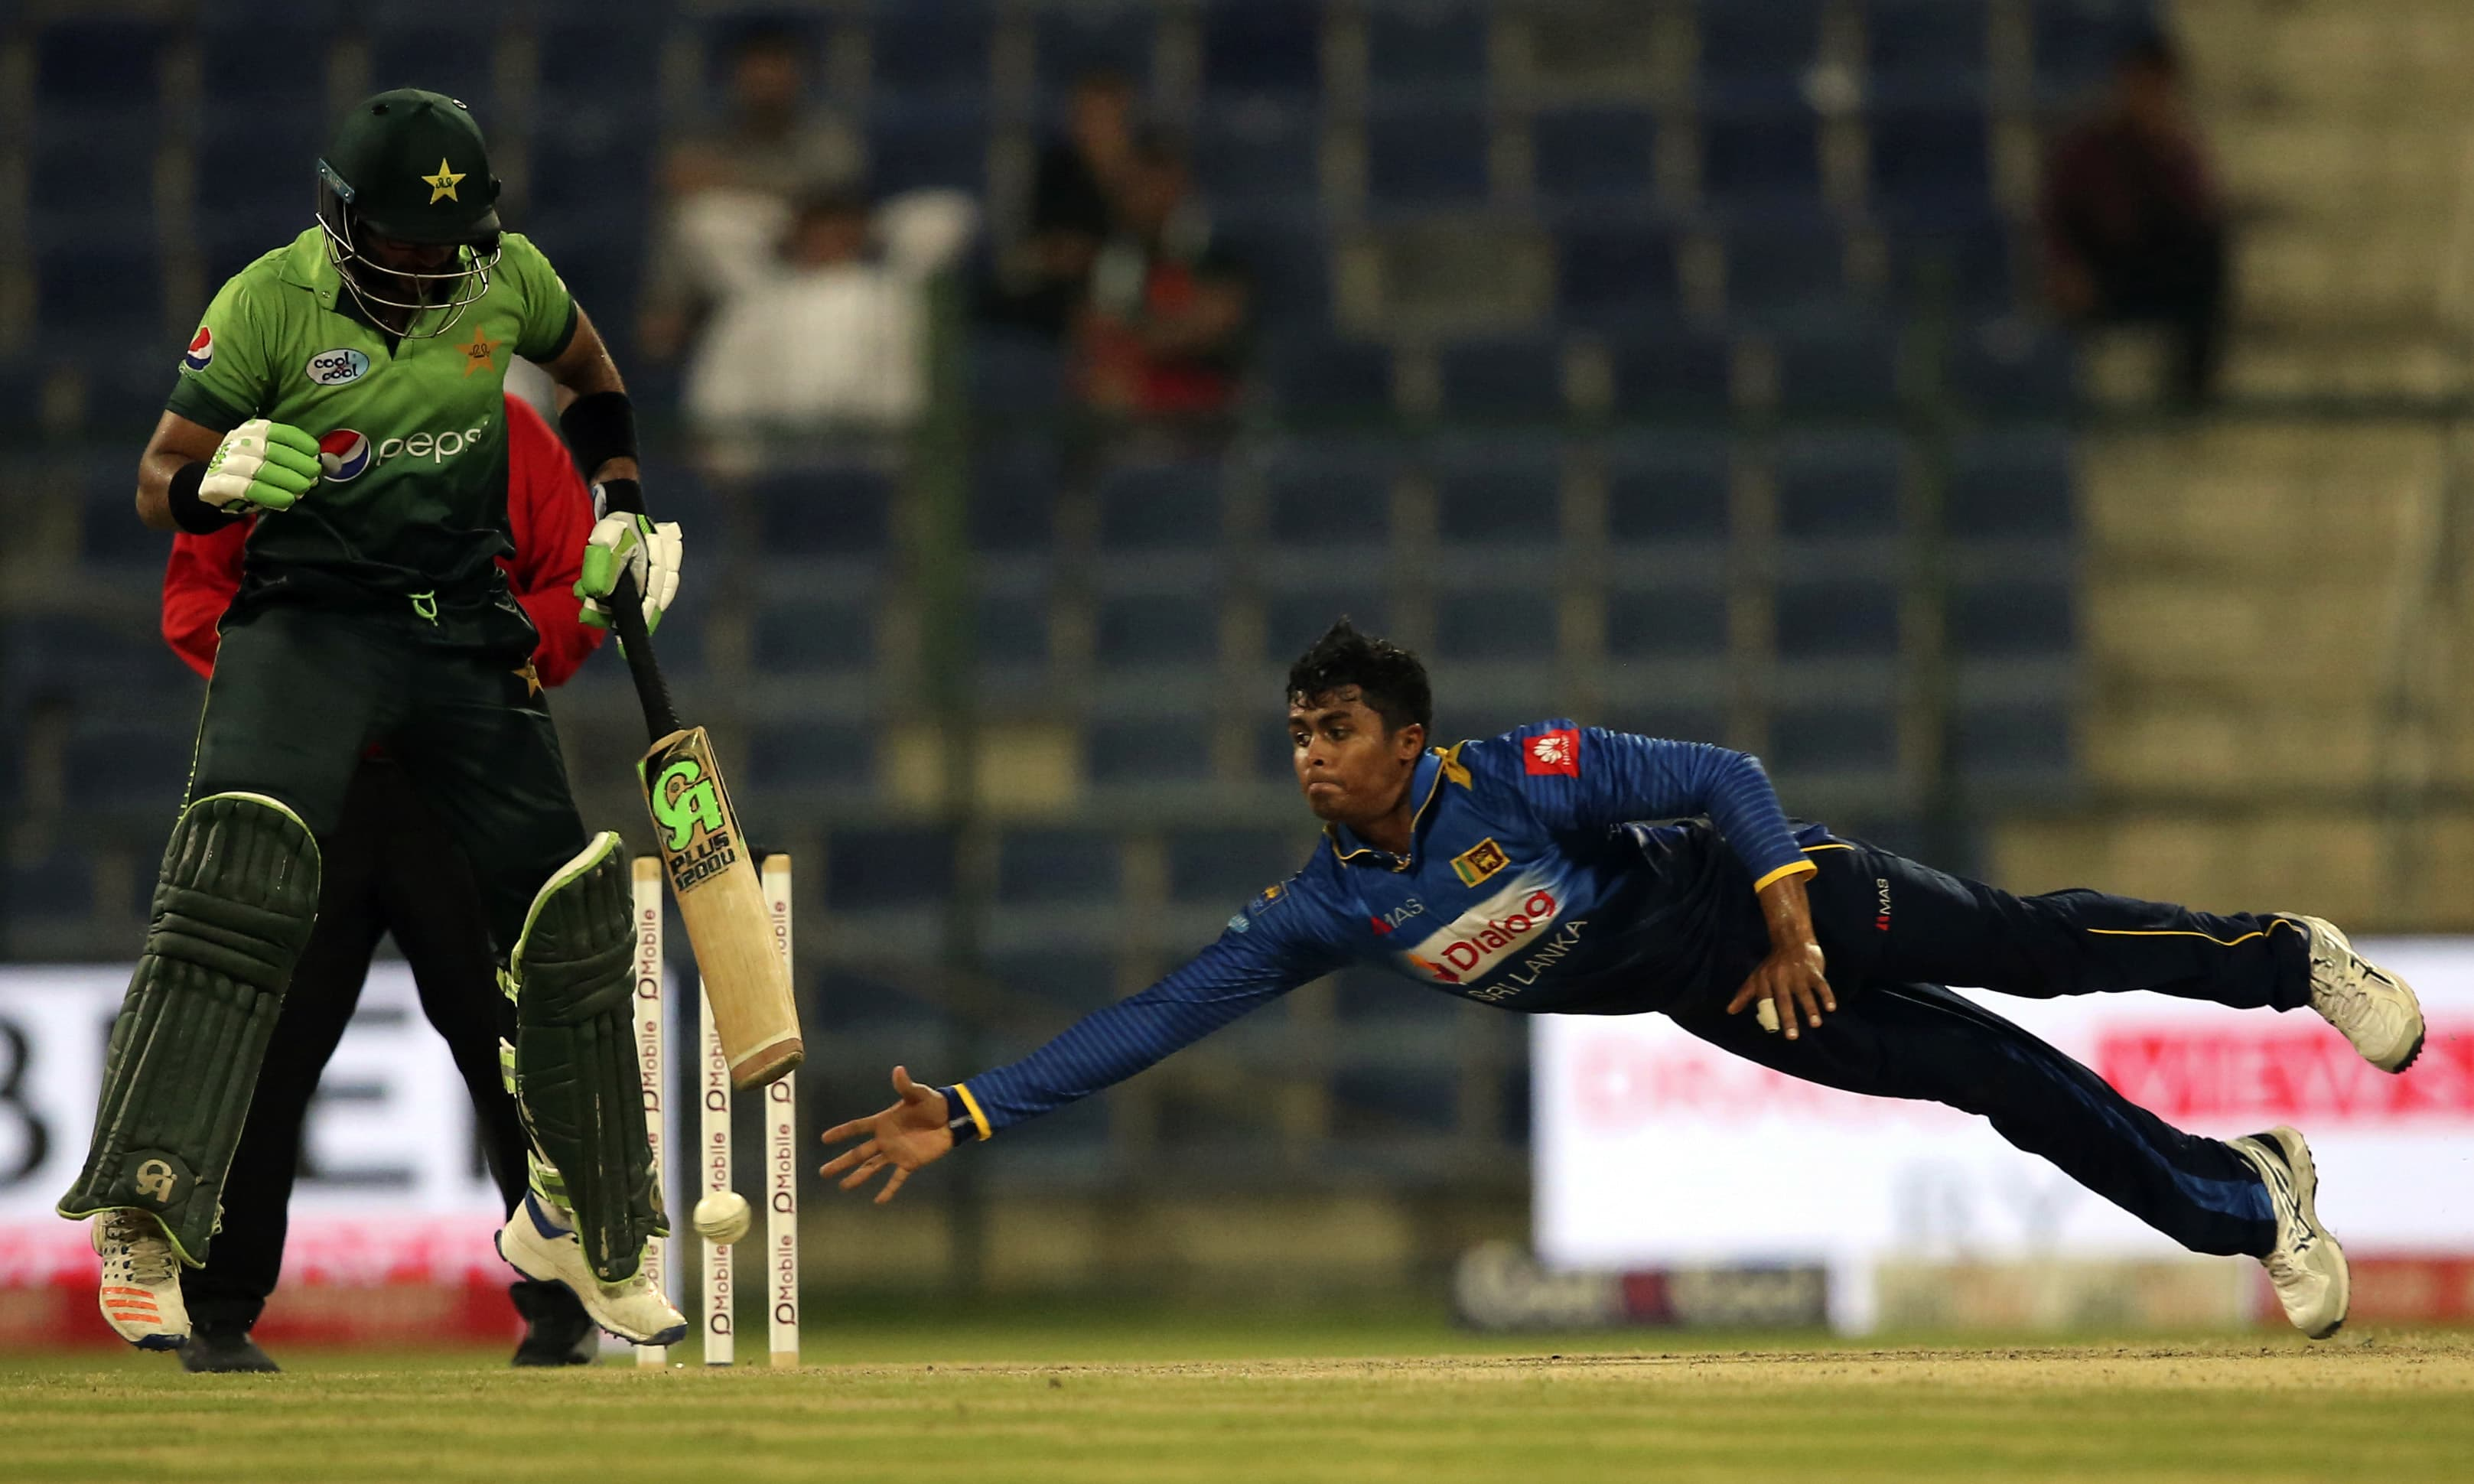 Jeffrey Vandersay dives to catch the ball during the third ODI match. —AP